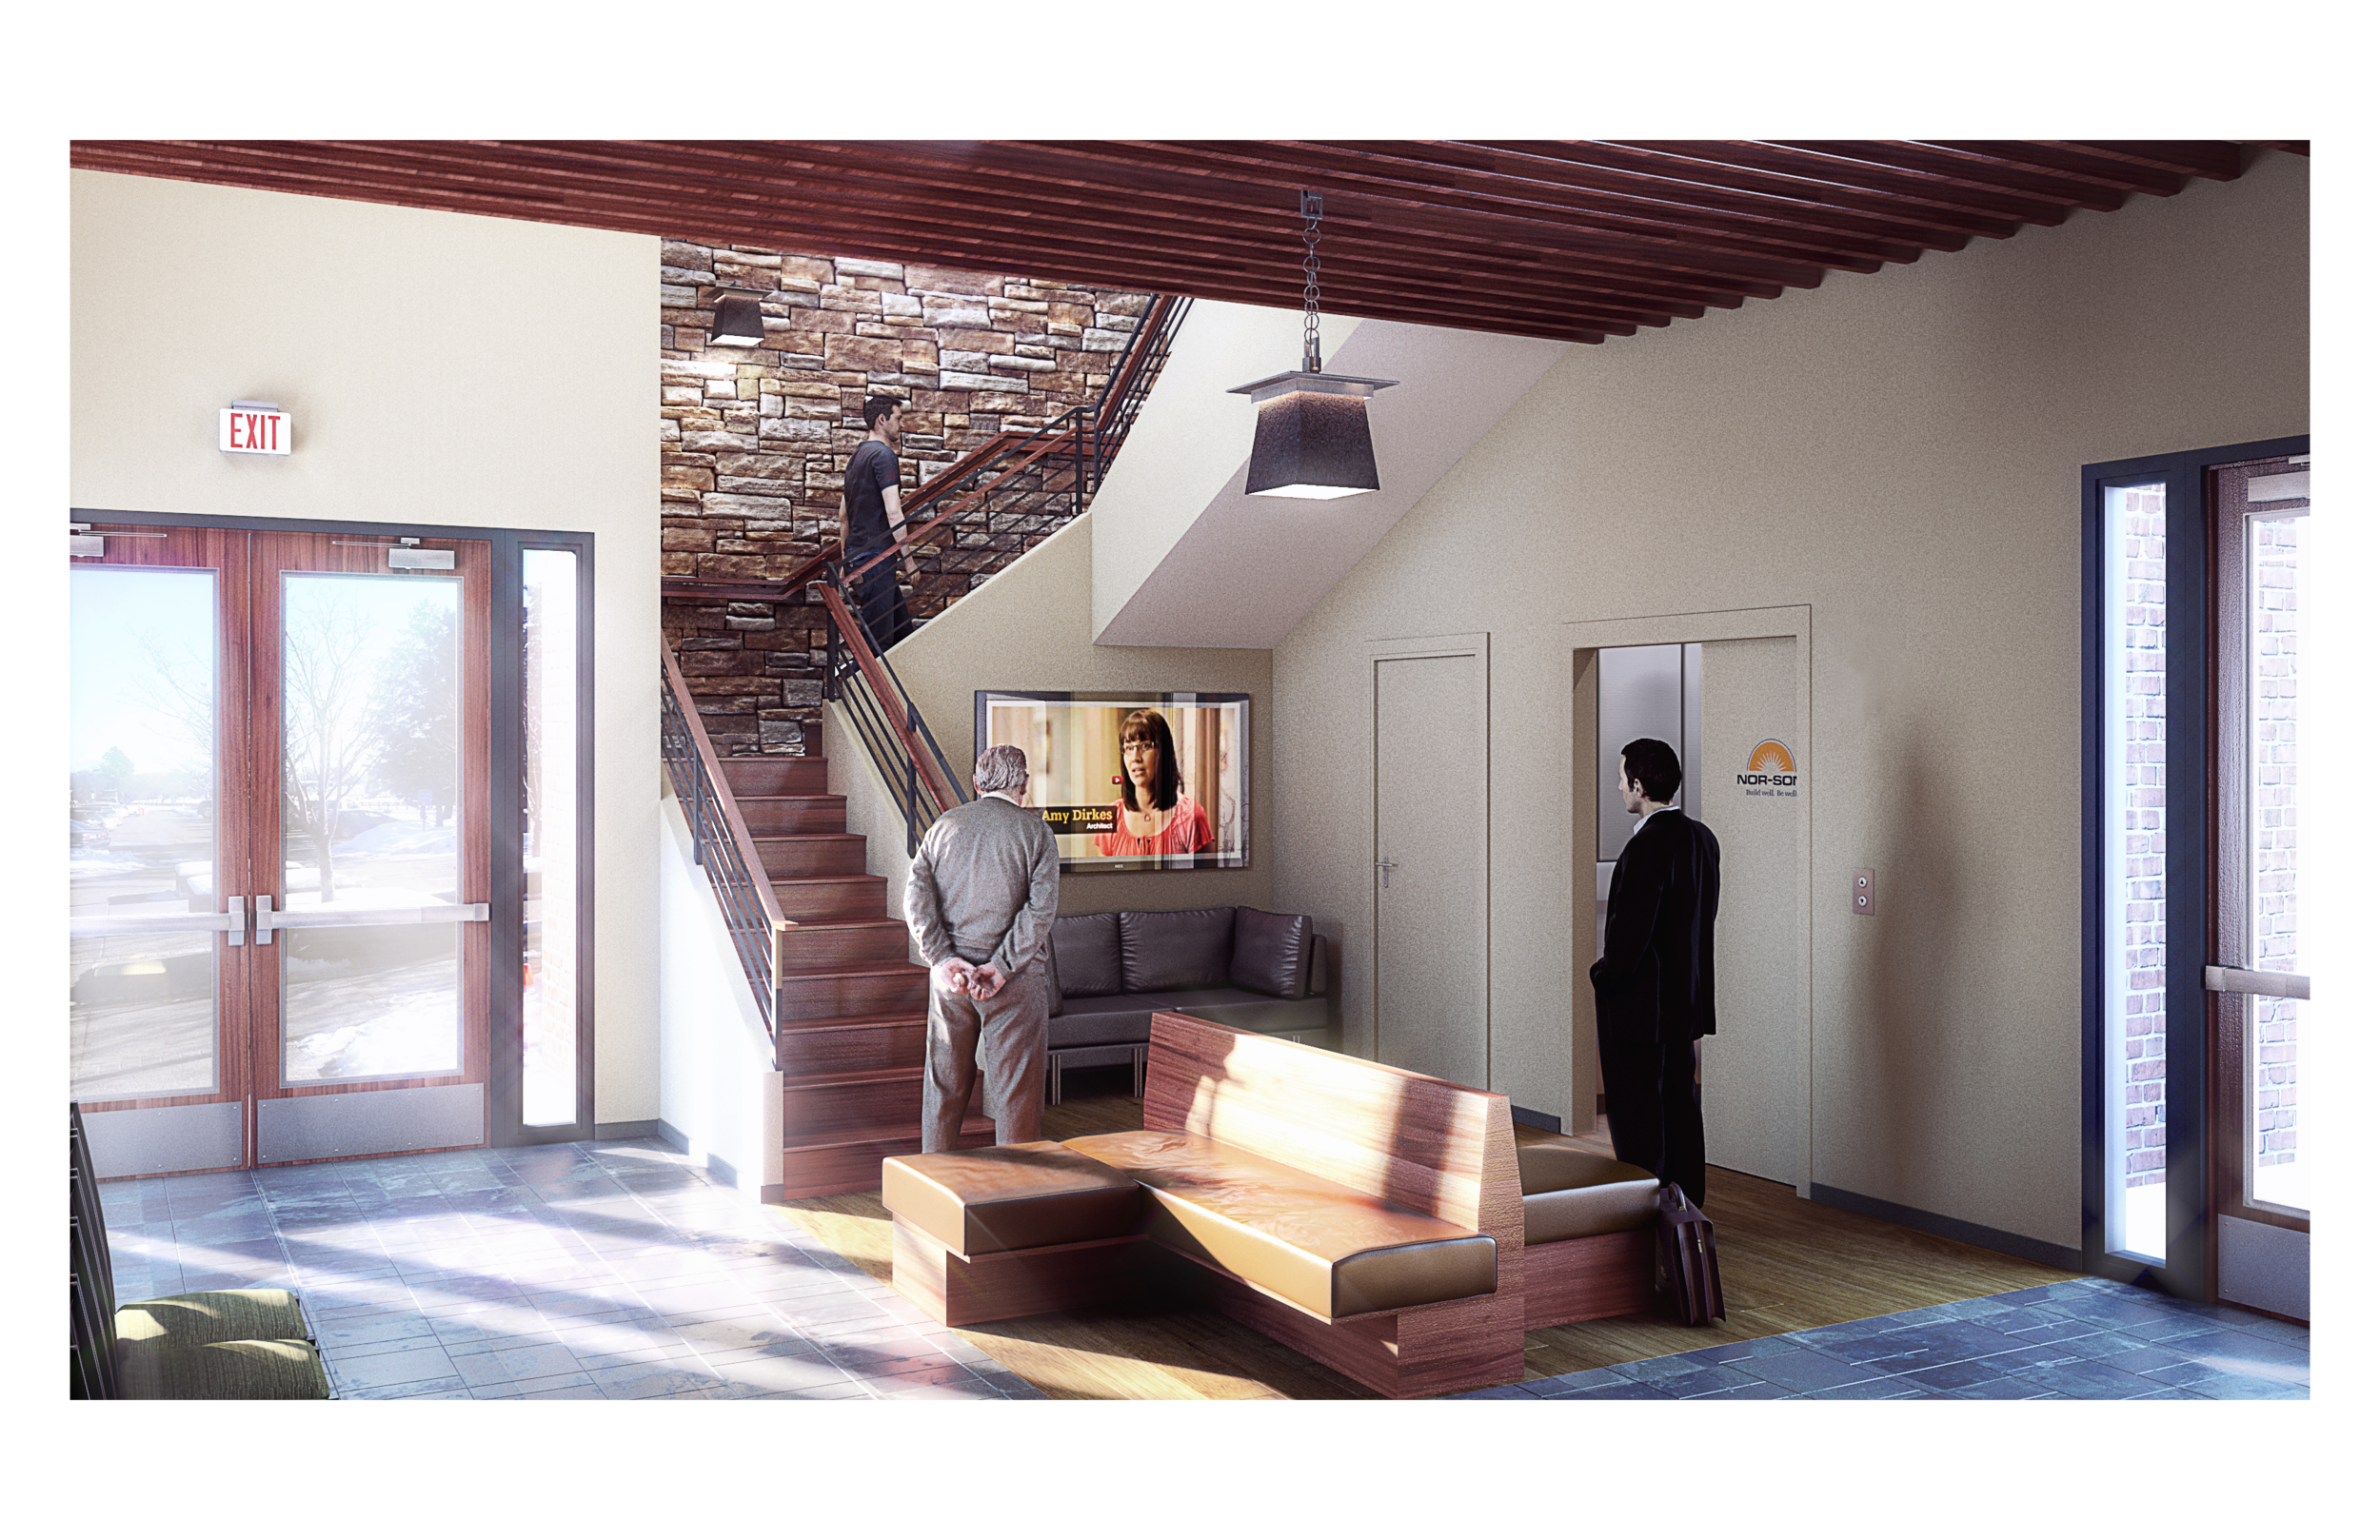 Lobby Rendering Using 3D People Scans